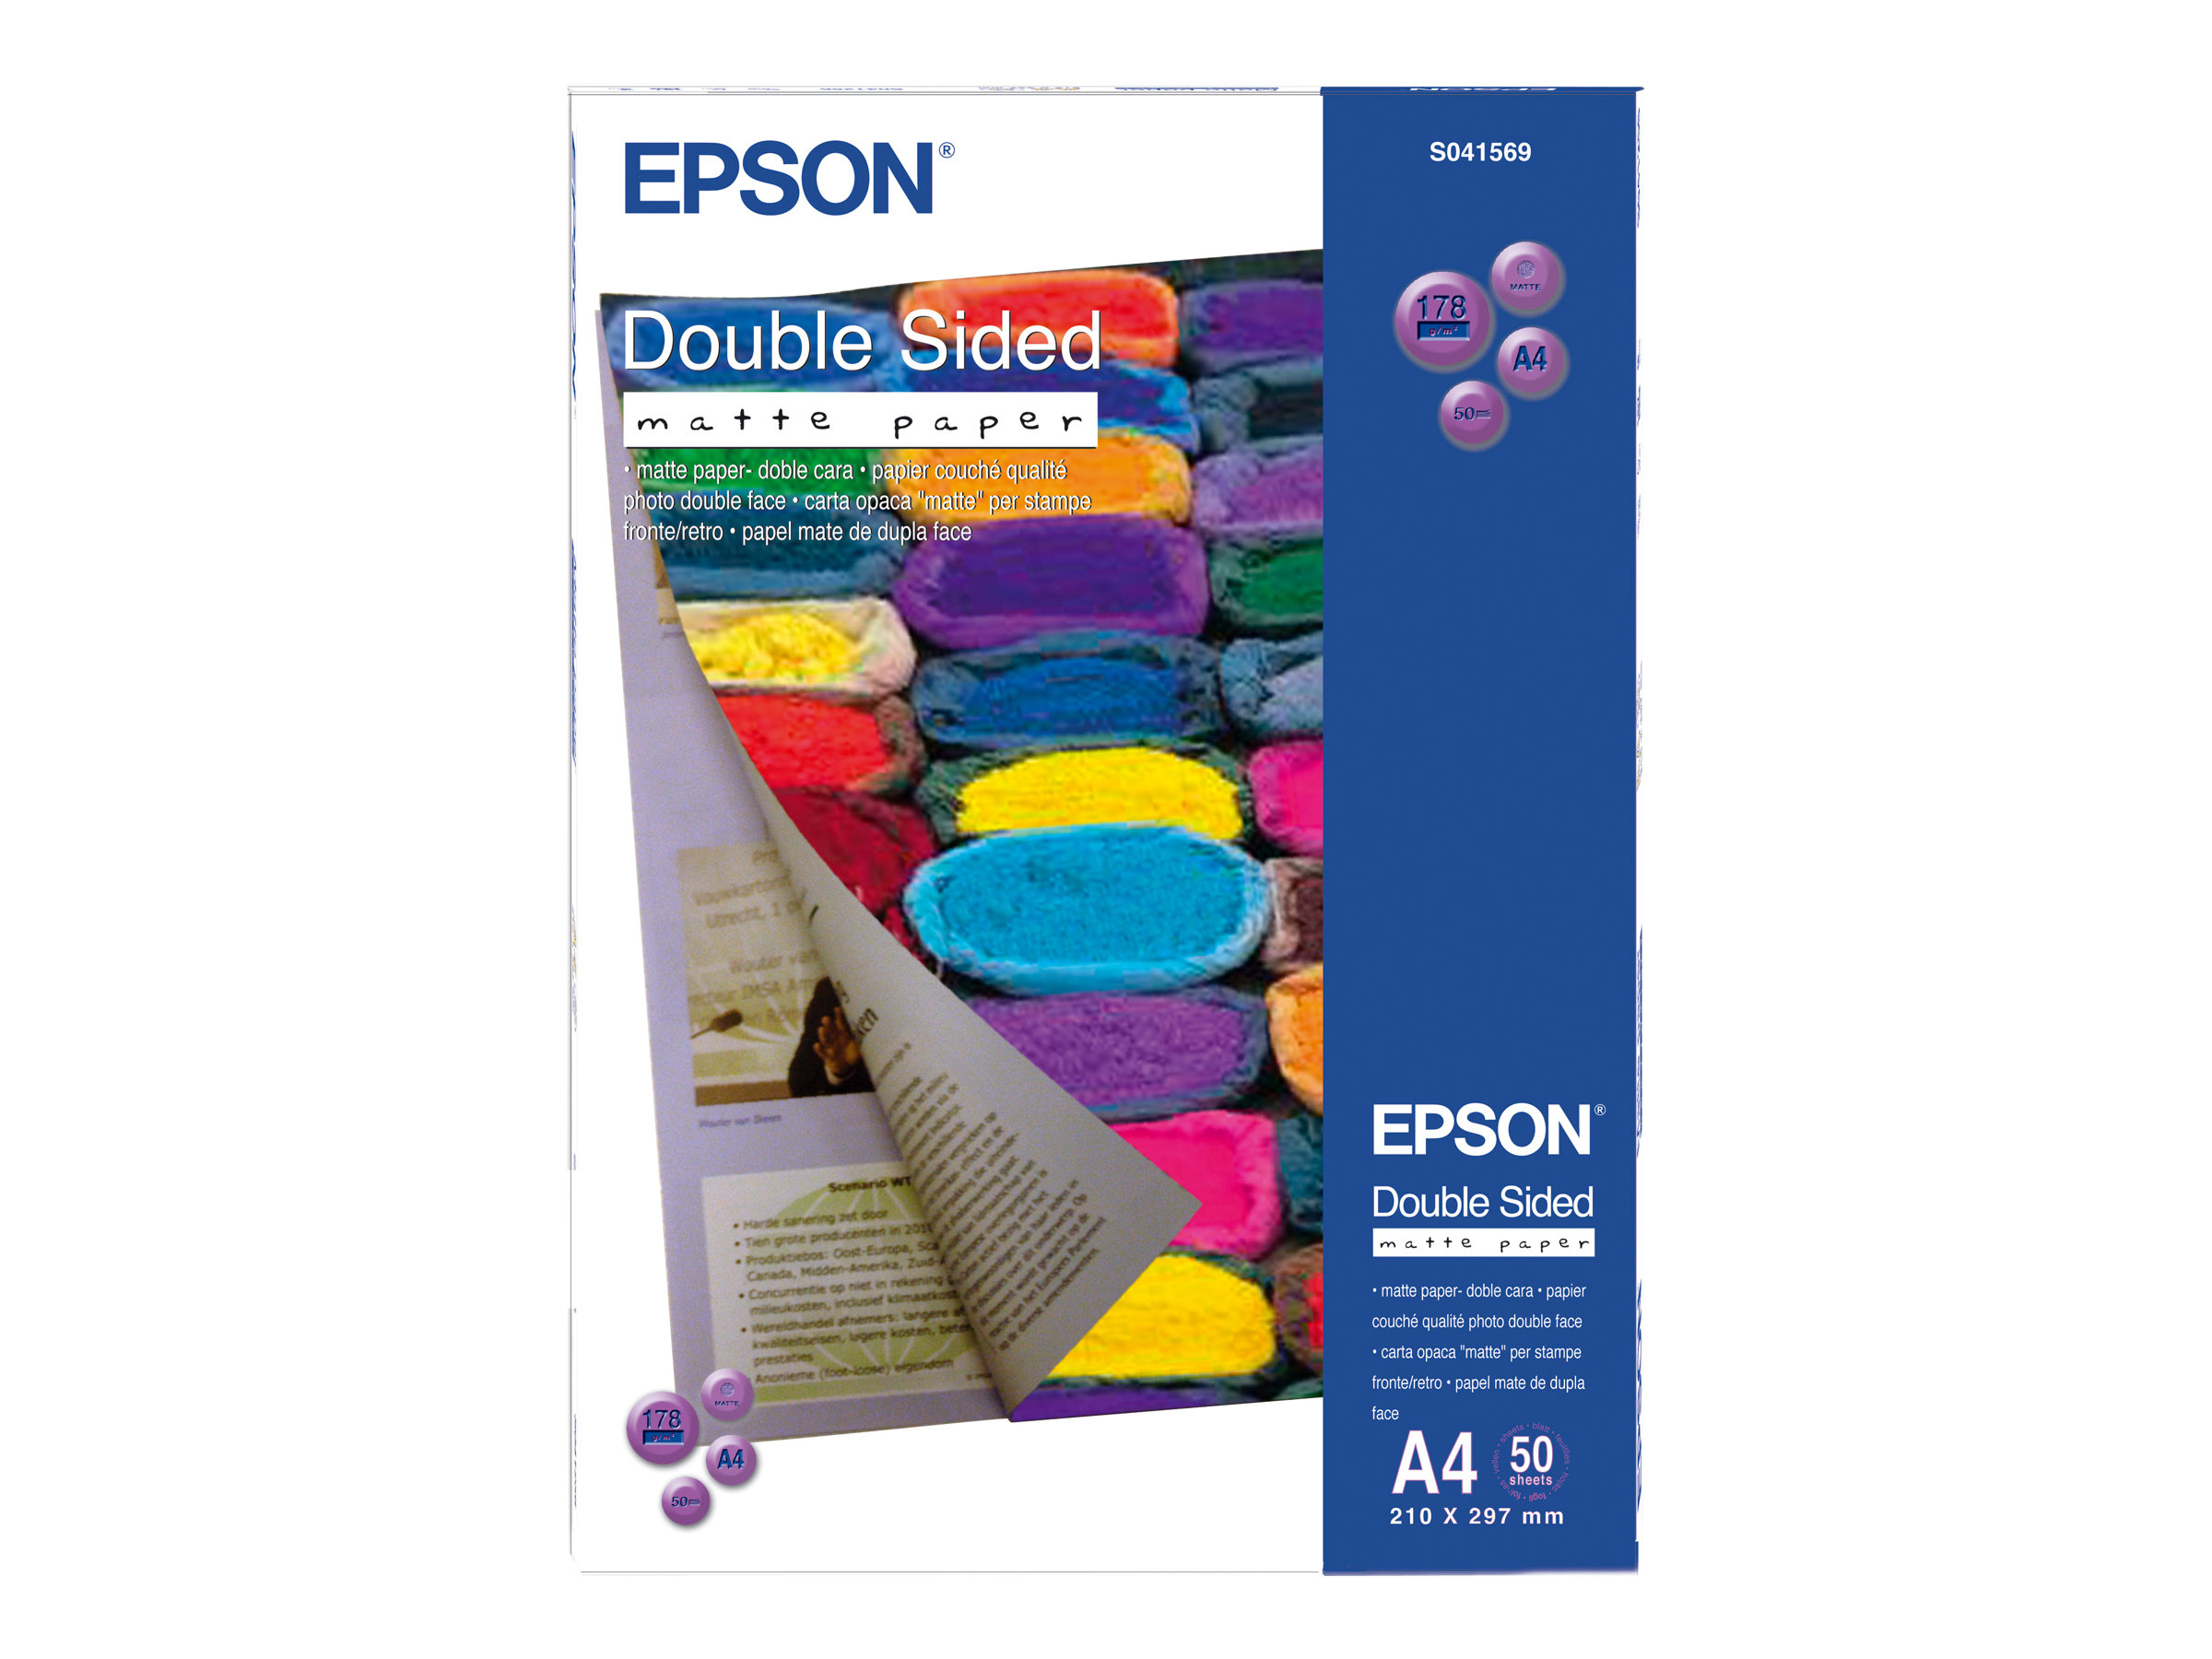 Papier photo Epson Double-Sided Matte Paper - papier - 50 feuille(s) - A4 - 178 g/m²